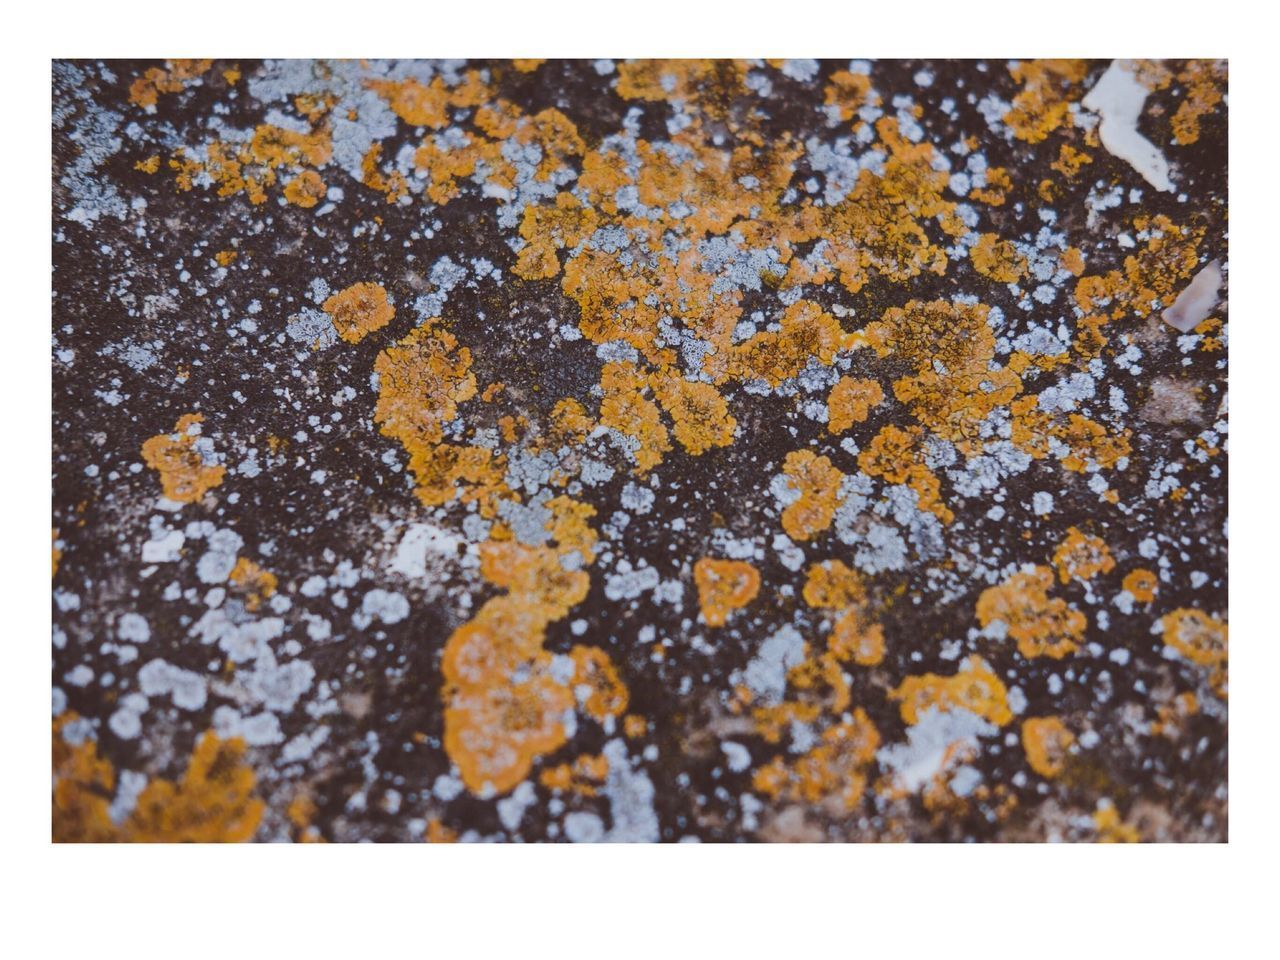 auto post production filter, close-up, no people, day, textured, lichen, nature, outdoors, tree, yellow, snow, beauty in nature